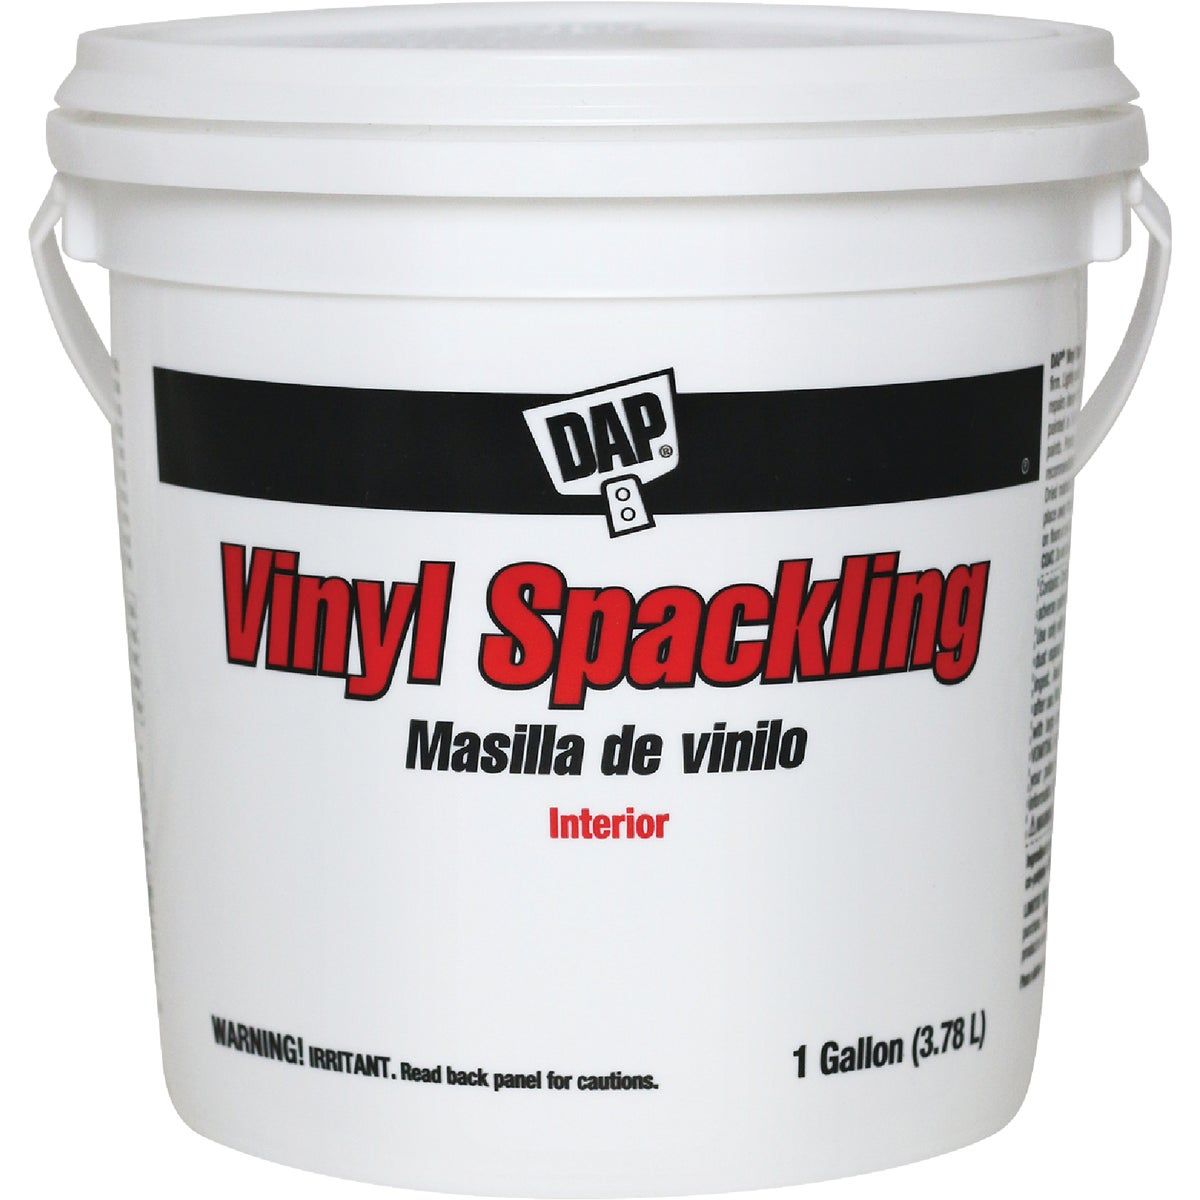 GAL VINYL SPACKLING - 12133 by Dap Inc